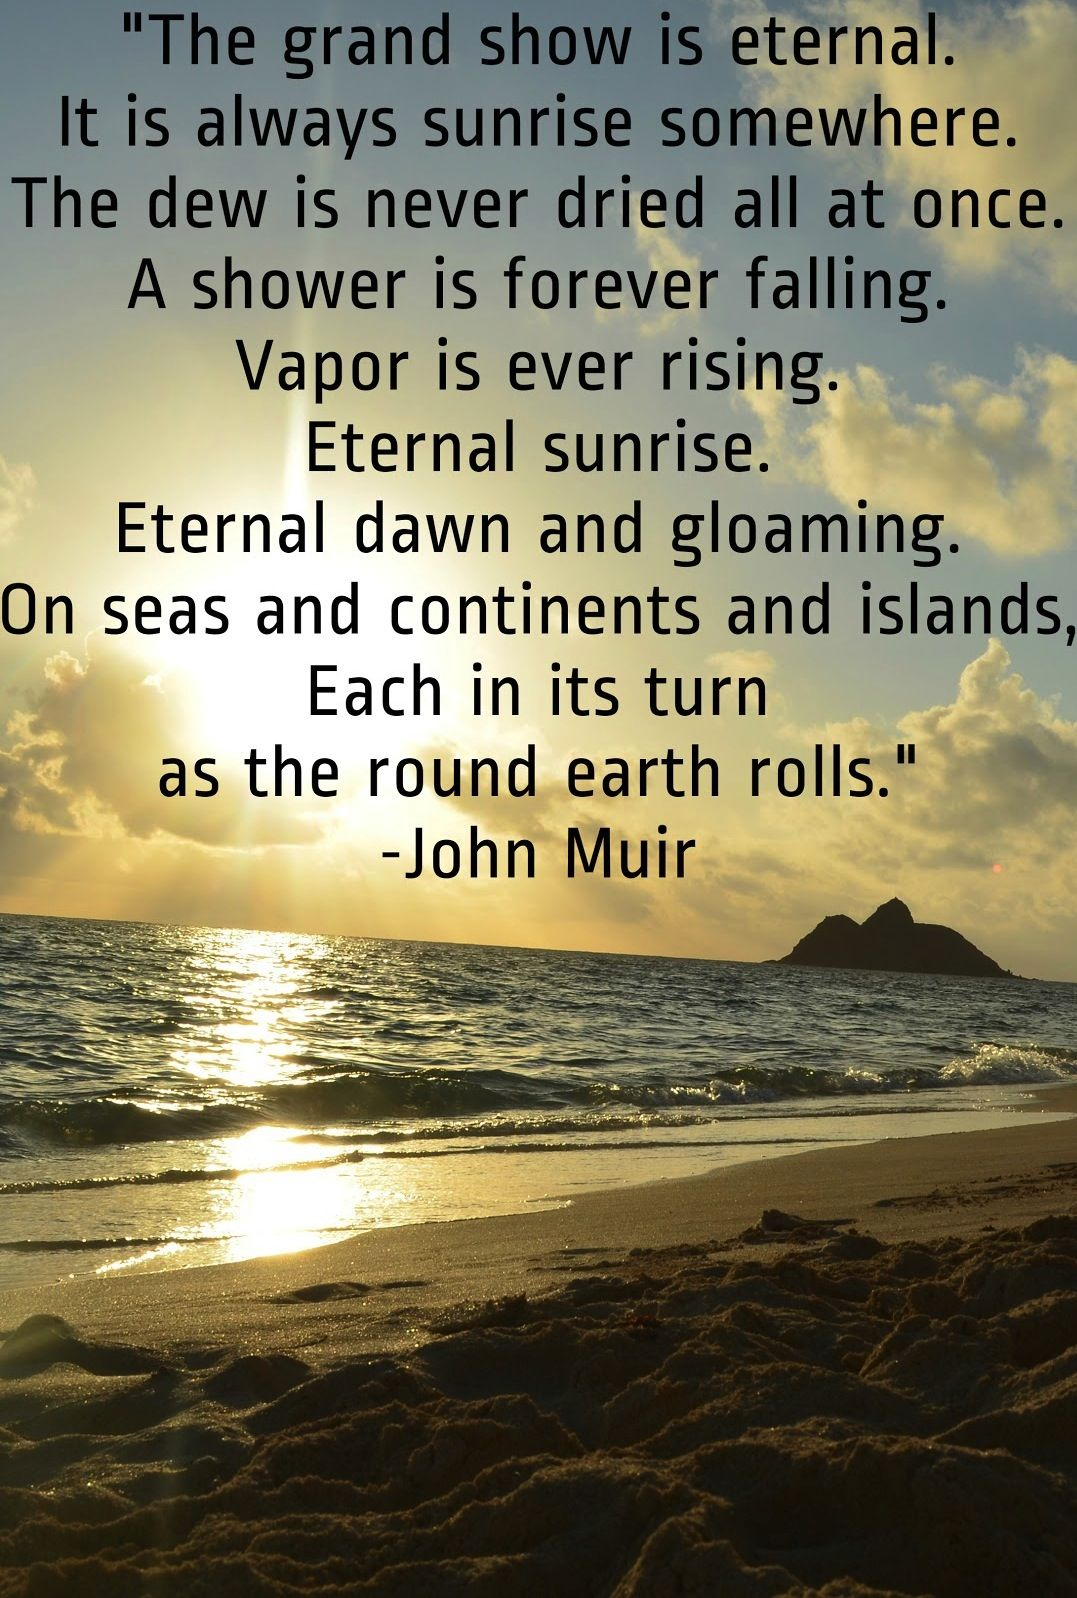 Pin By Scarlet On Quotes John Muir Quotes John Muir Quotes